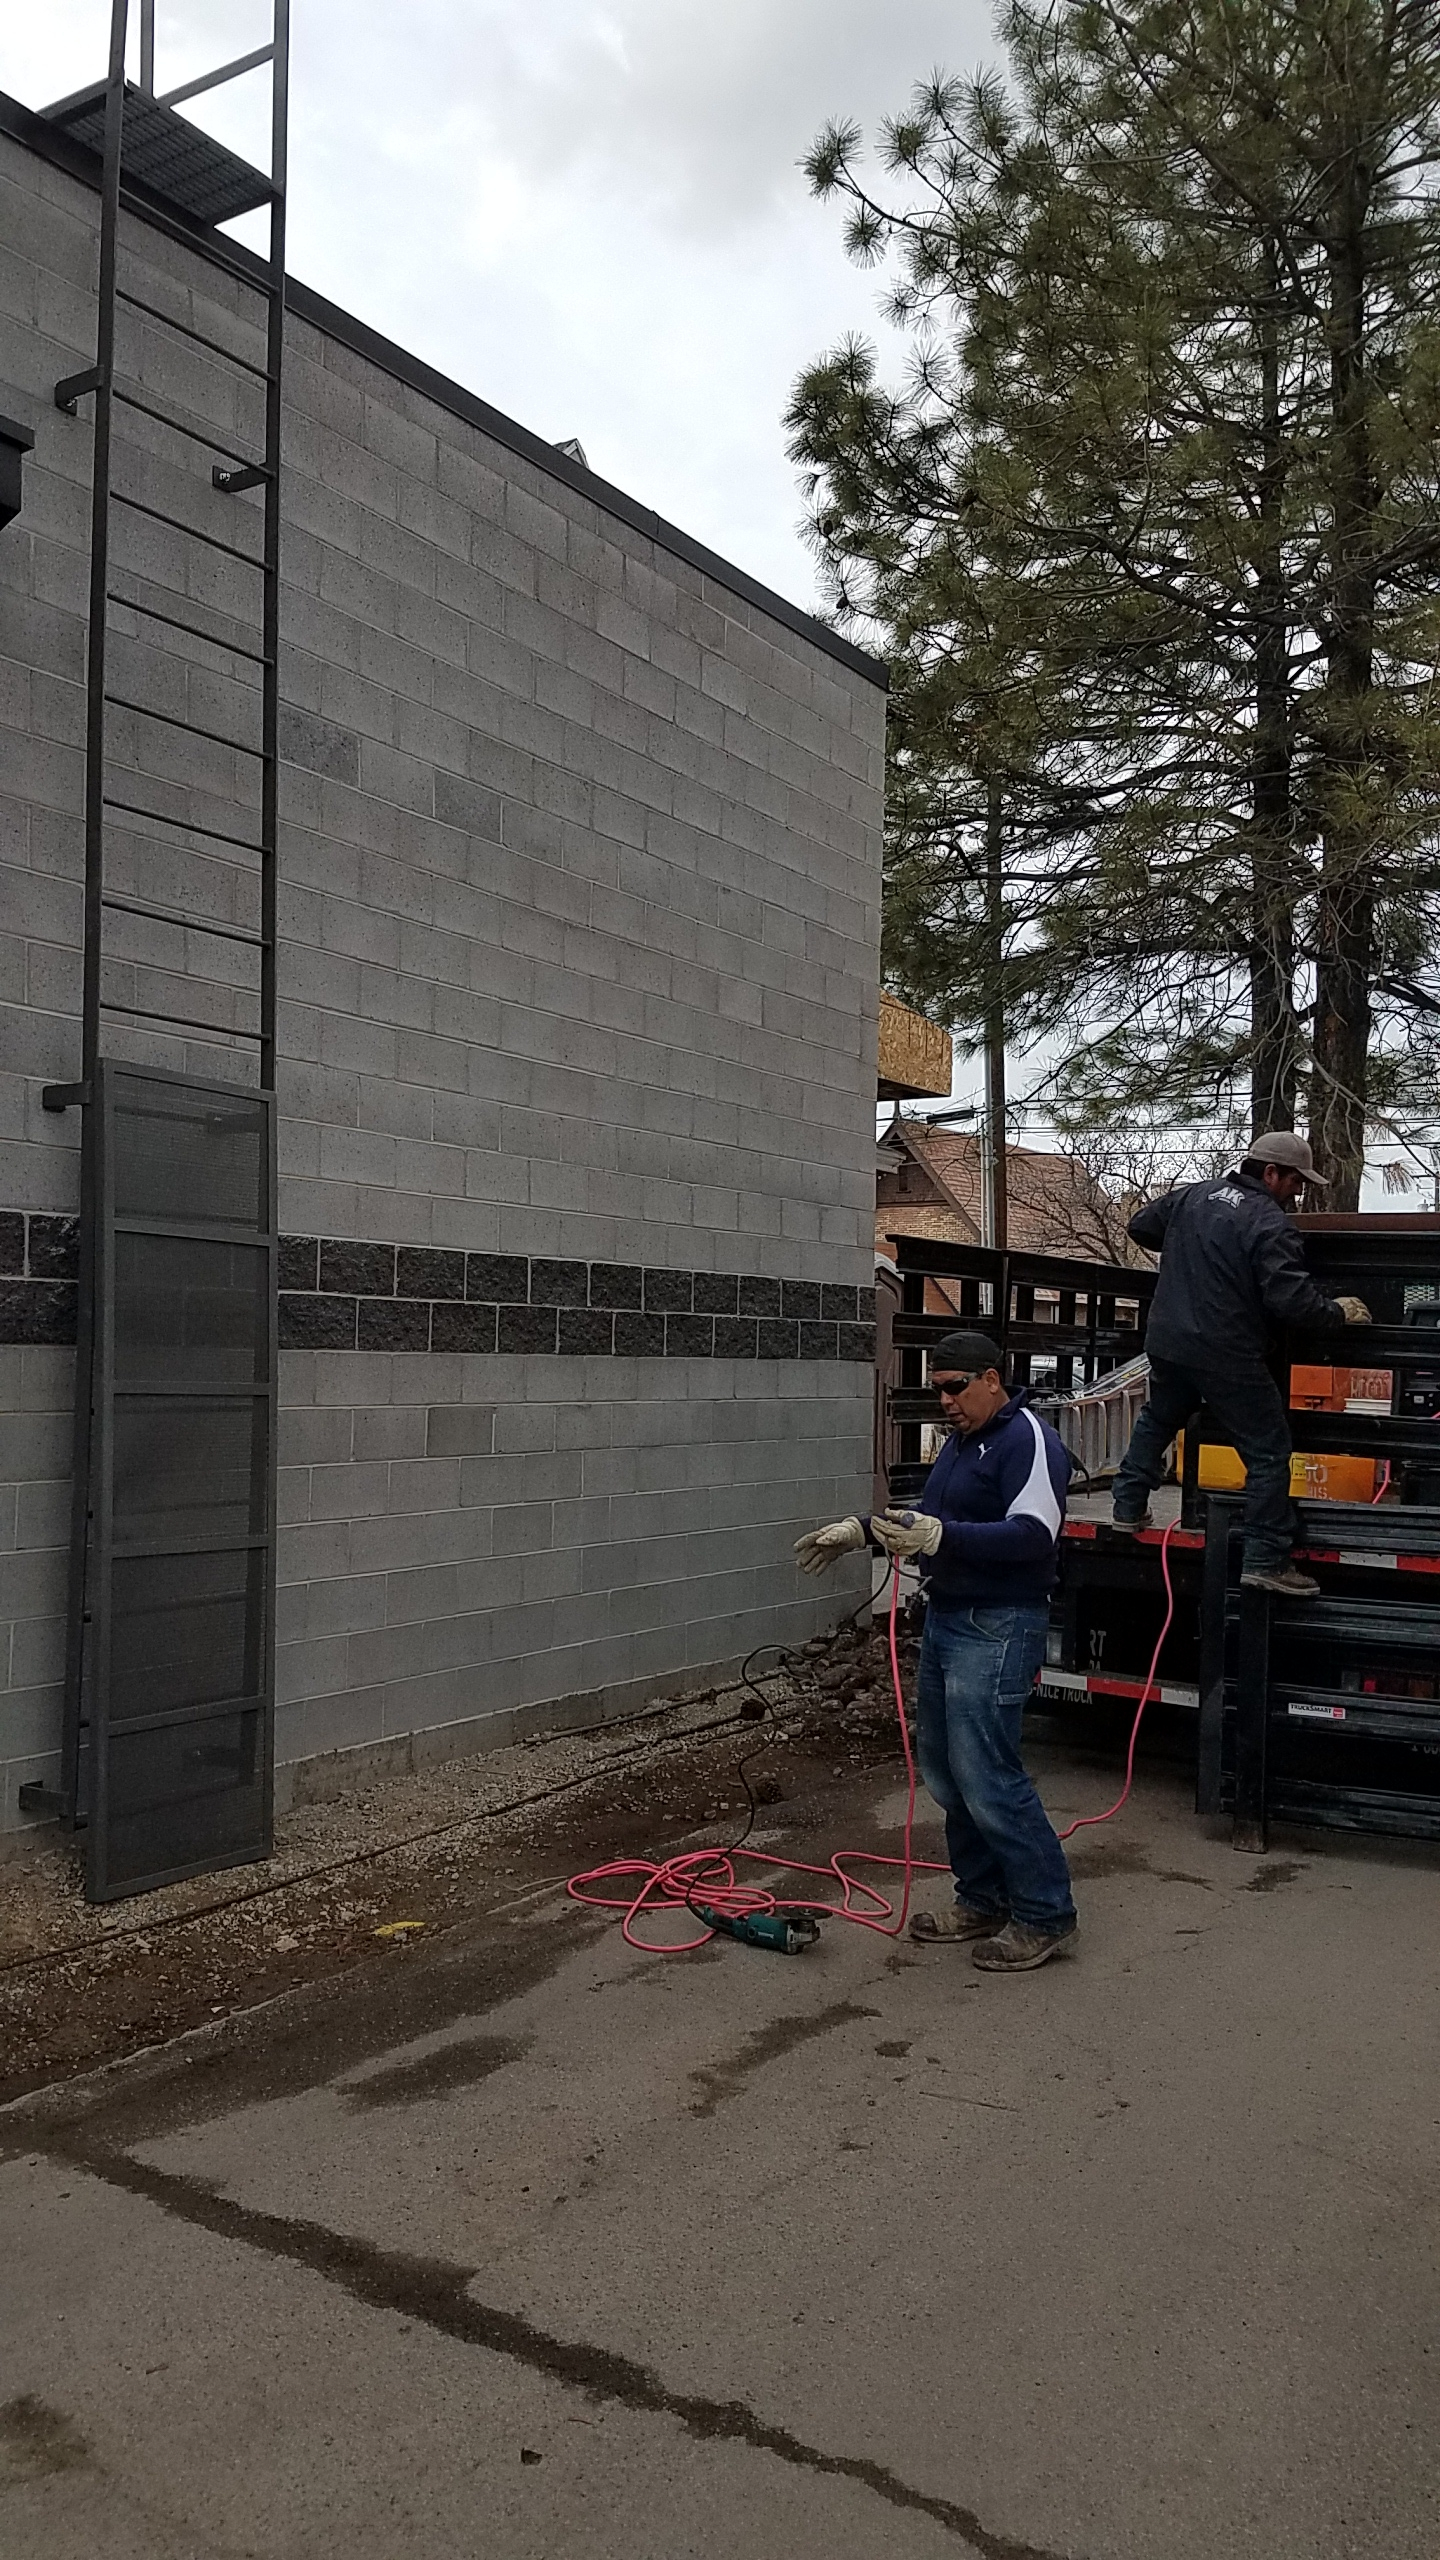 The exterior ladders showed up making it a lot easier to get on the roof when needed.